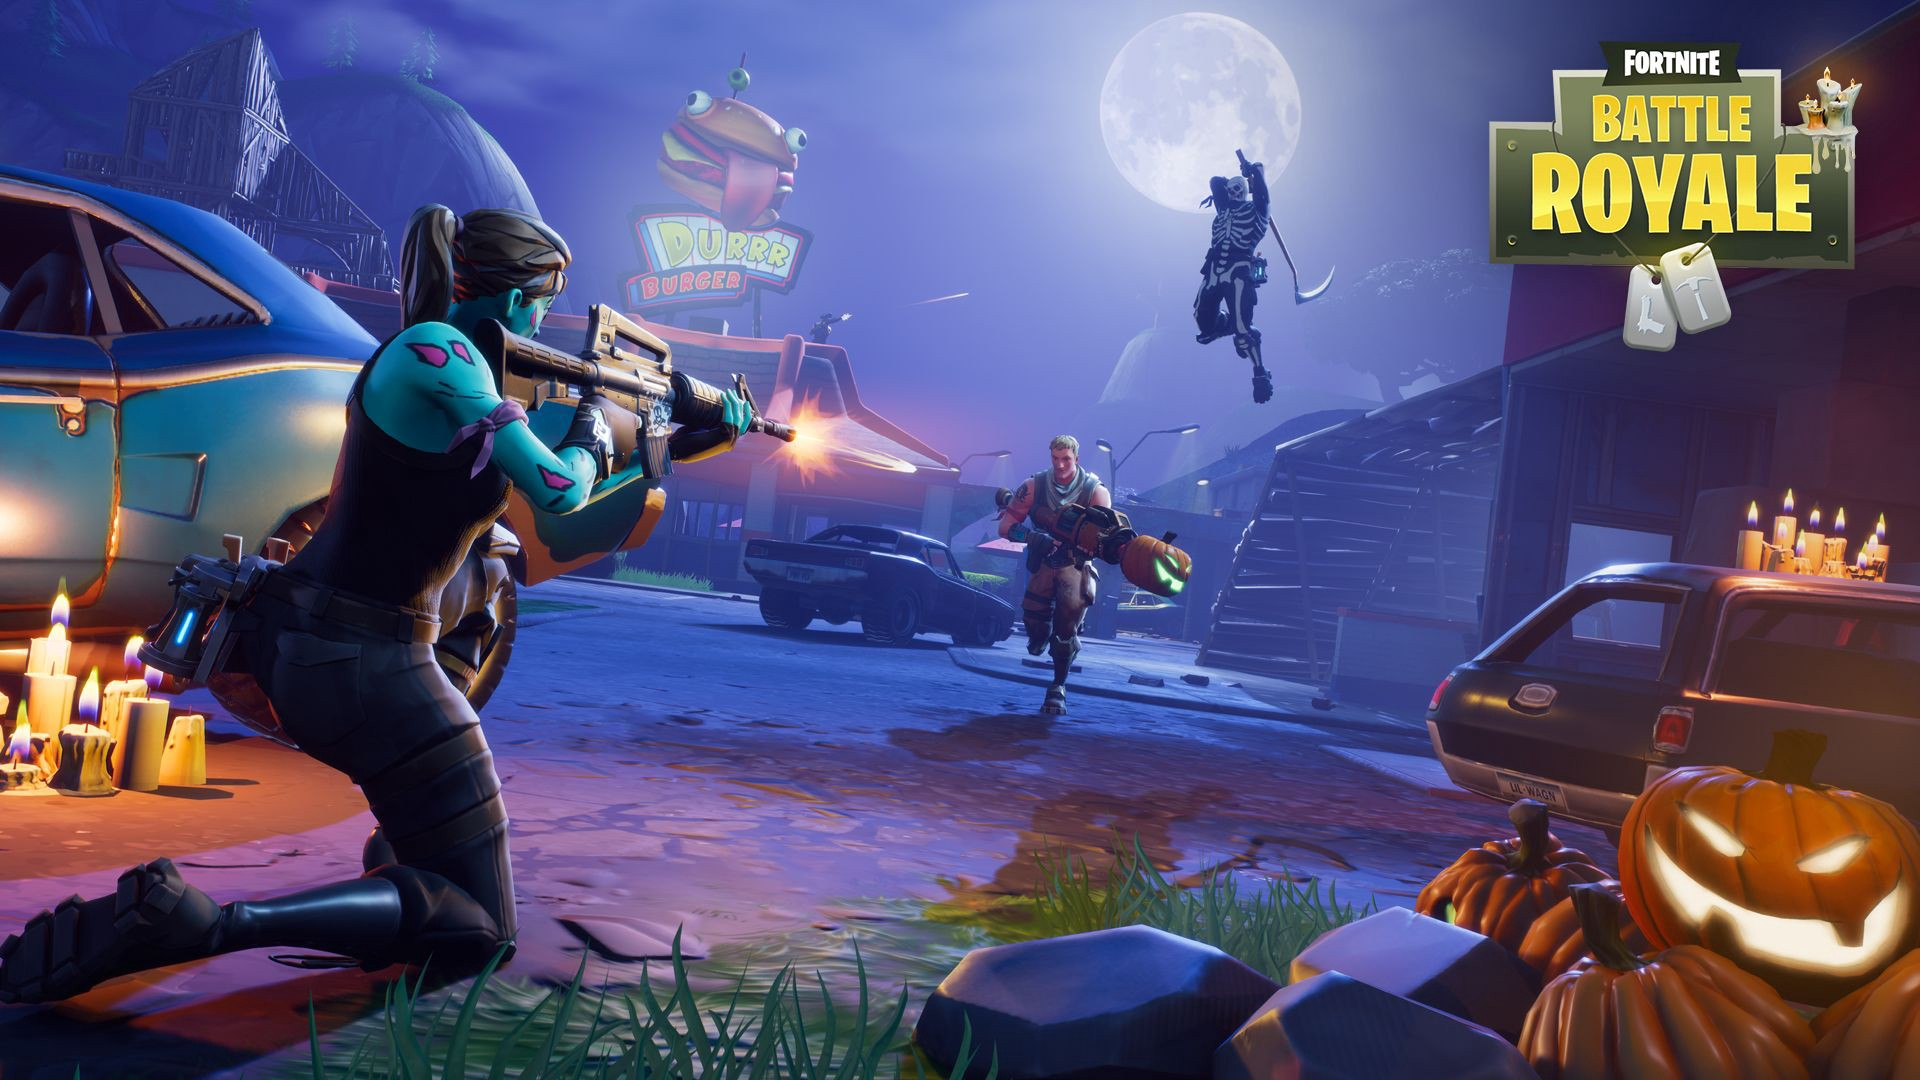 DISRUPTED: How Overwatch, Fortnite, and PUBG will need to adjust to